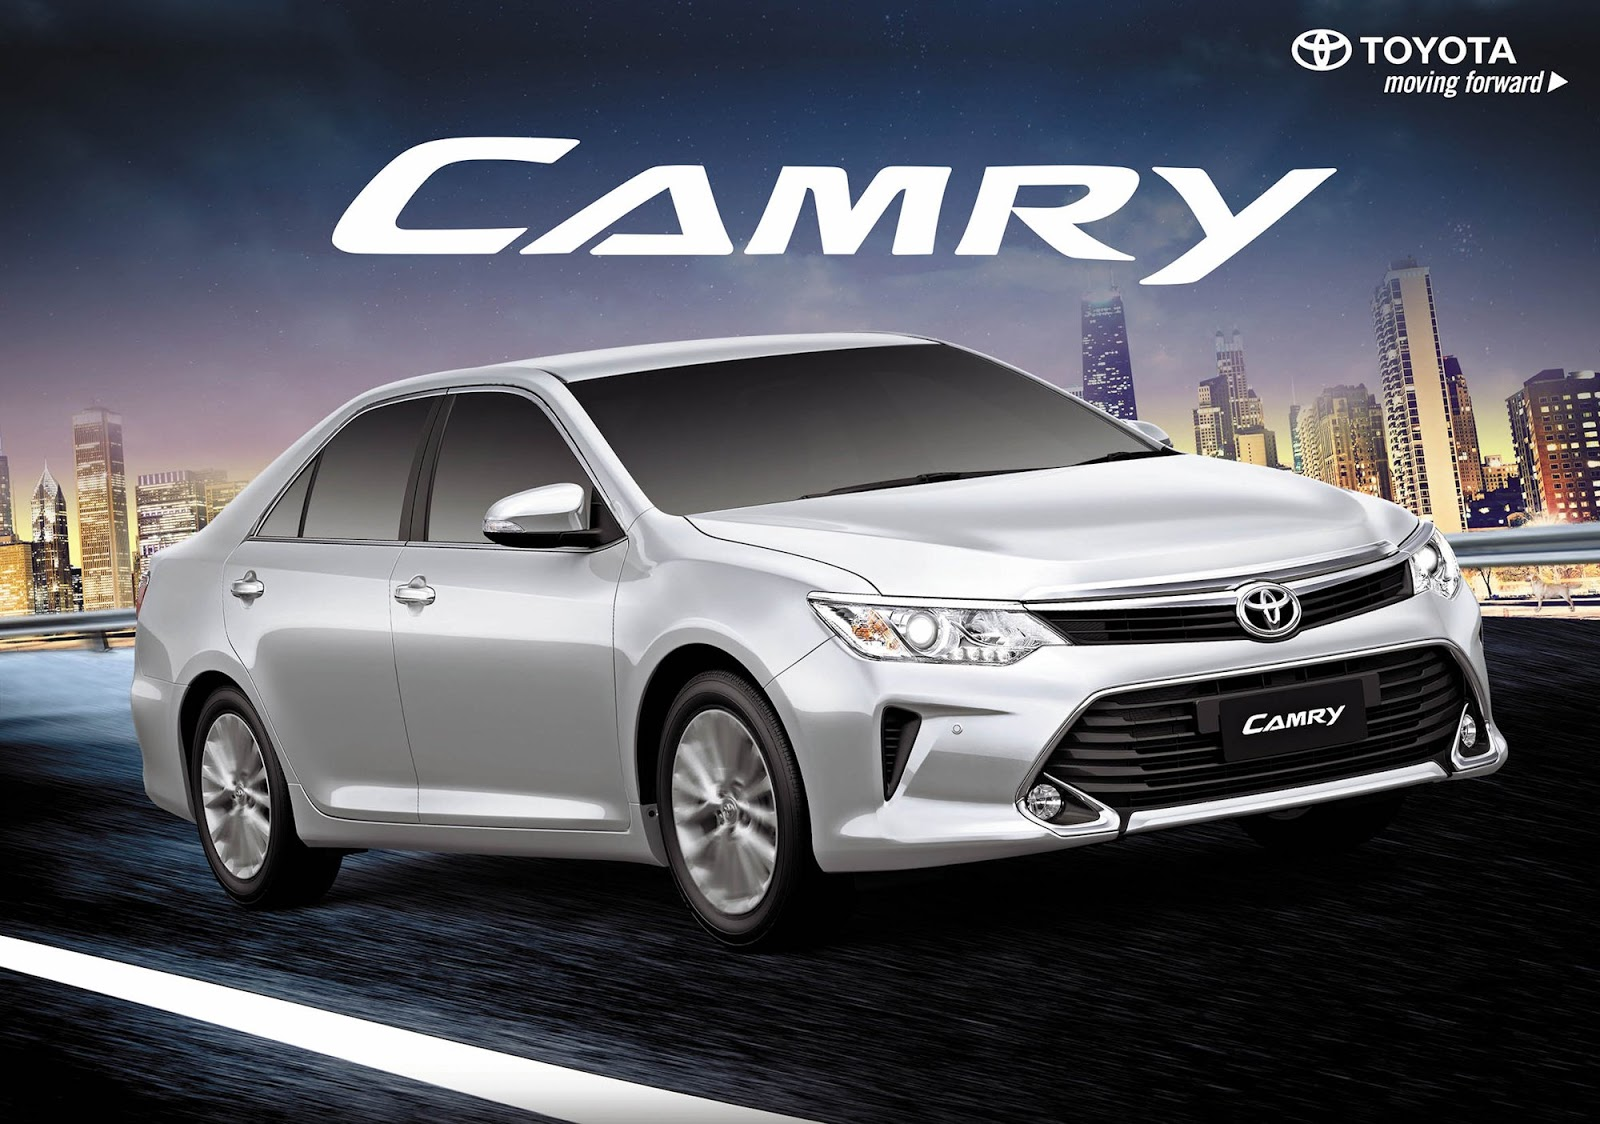 new 2015 toyota camry aims to set benchmark once more w brochure philippine car news car. Black Bedroom Furniture Sets. Home Design Ideas